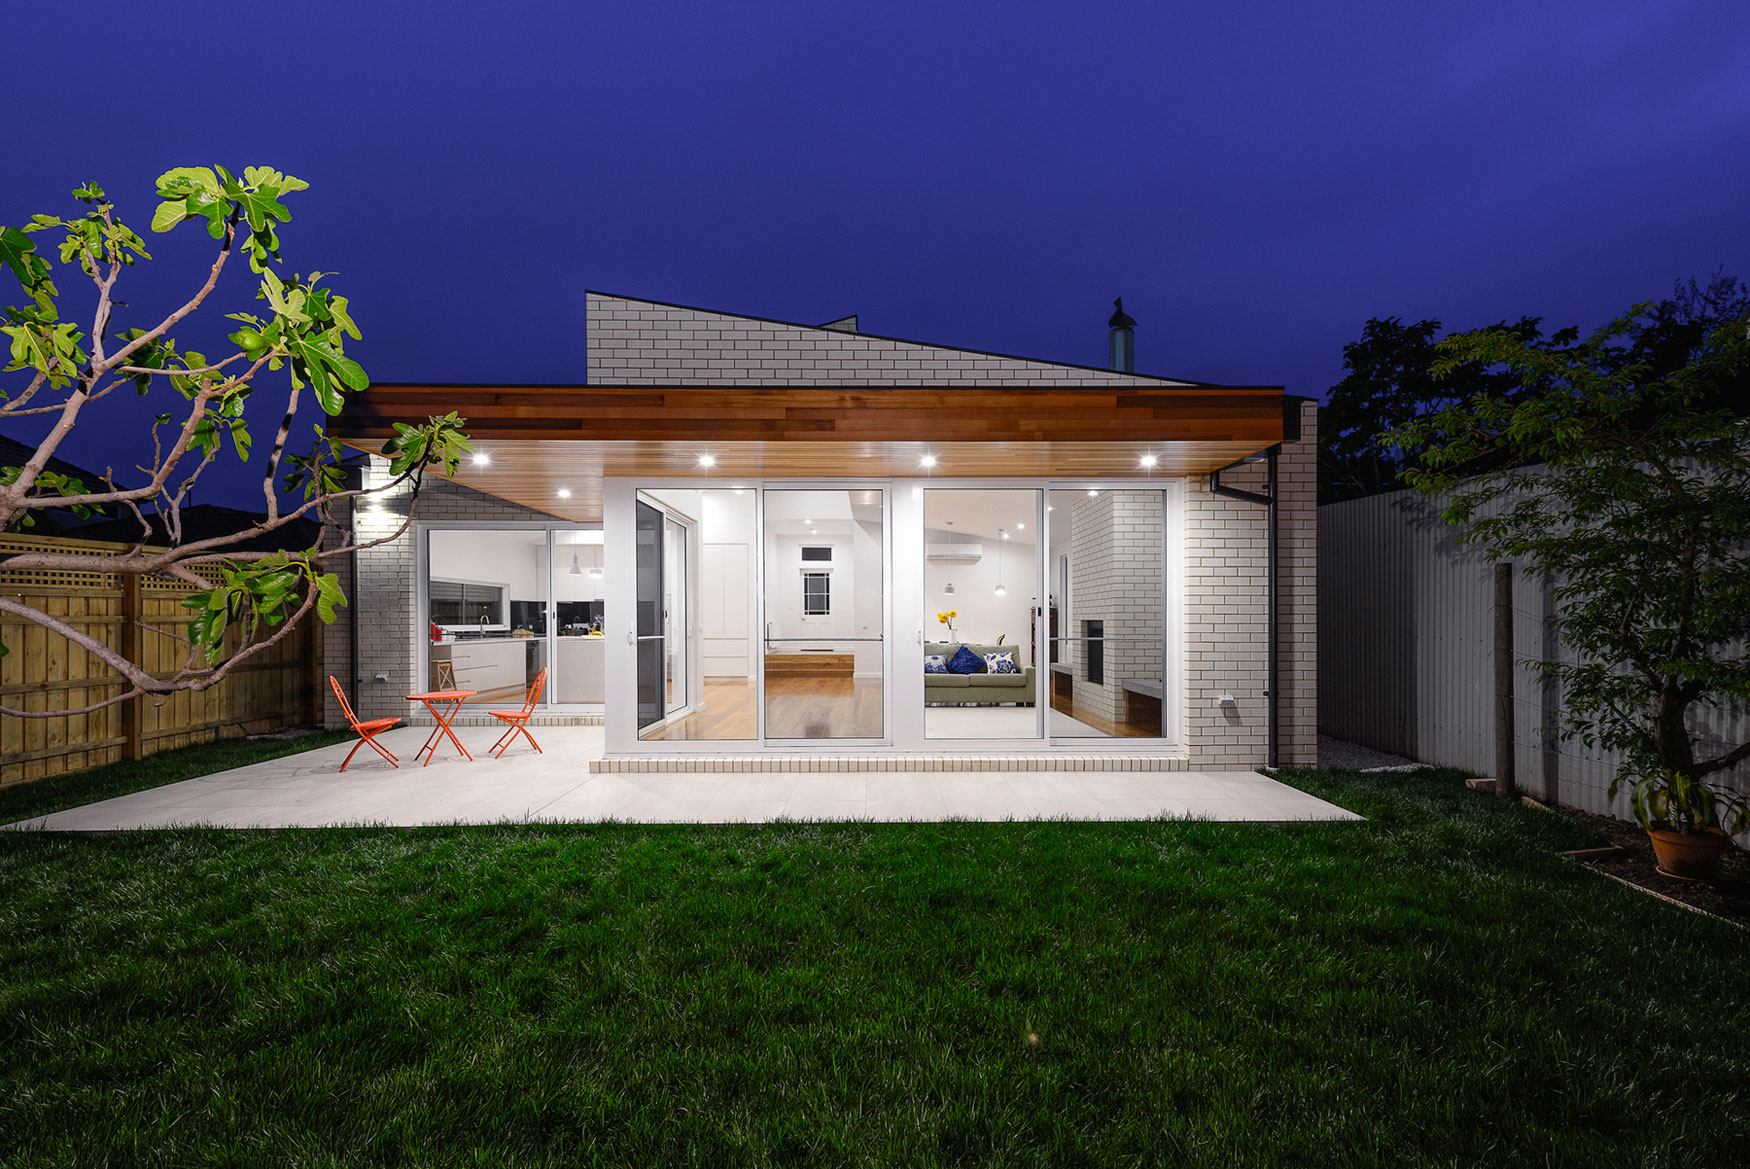 Itn Architects Complete A Renovation And Extension To An Old 1880 S Victorian Brick House In An Old Suburb Of Melbourne Australia